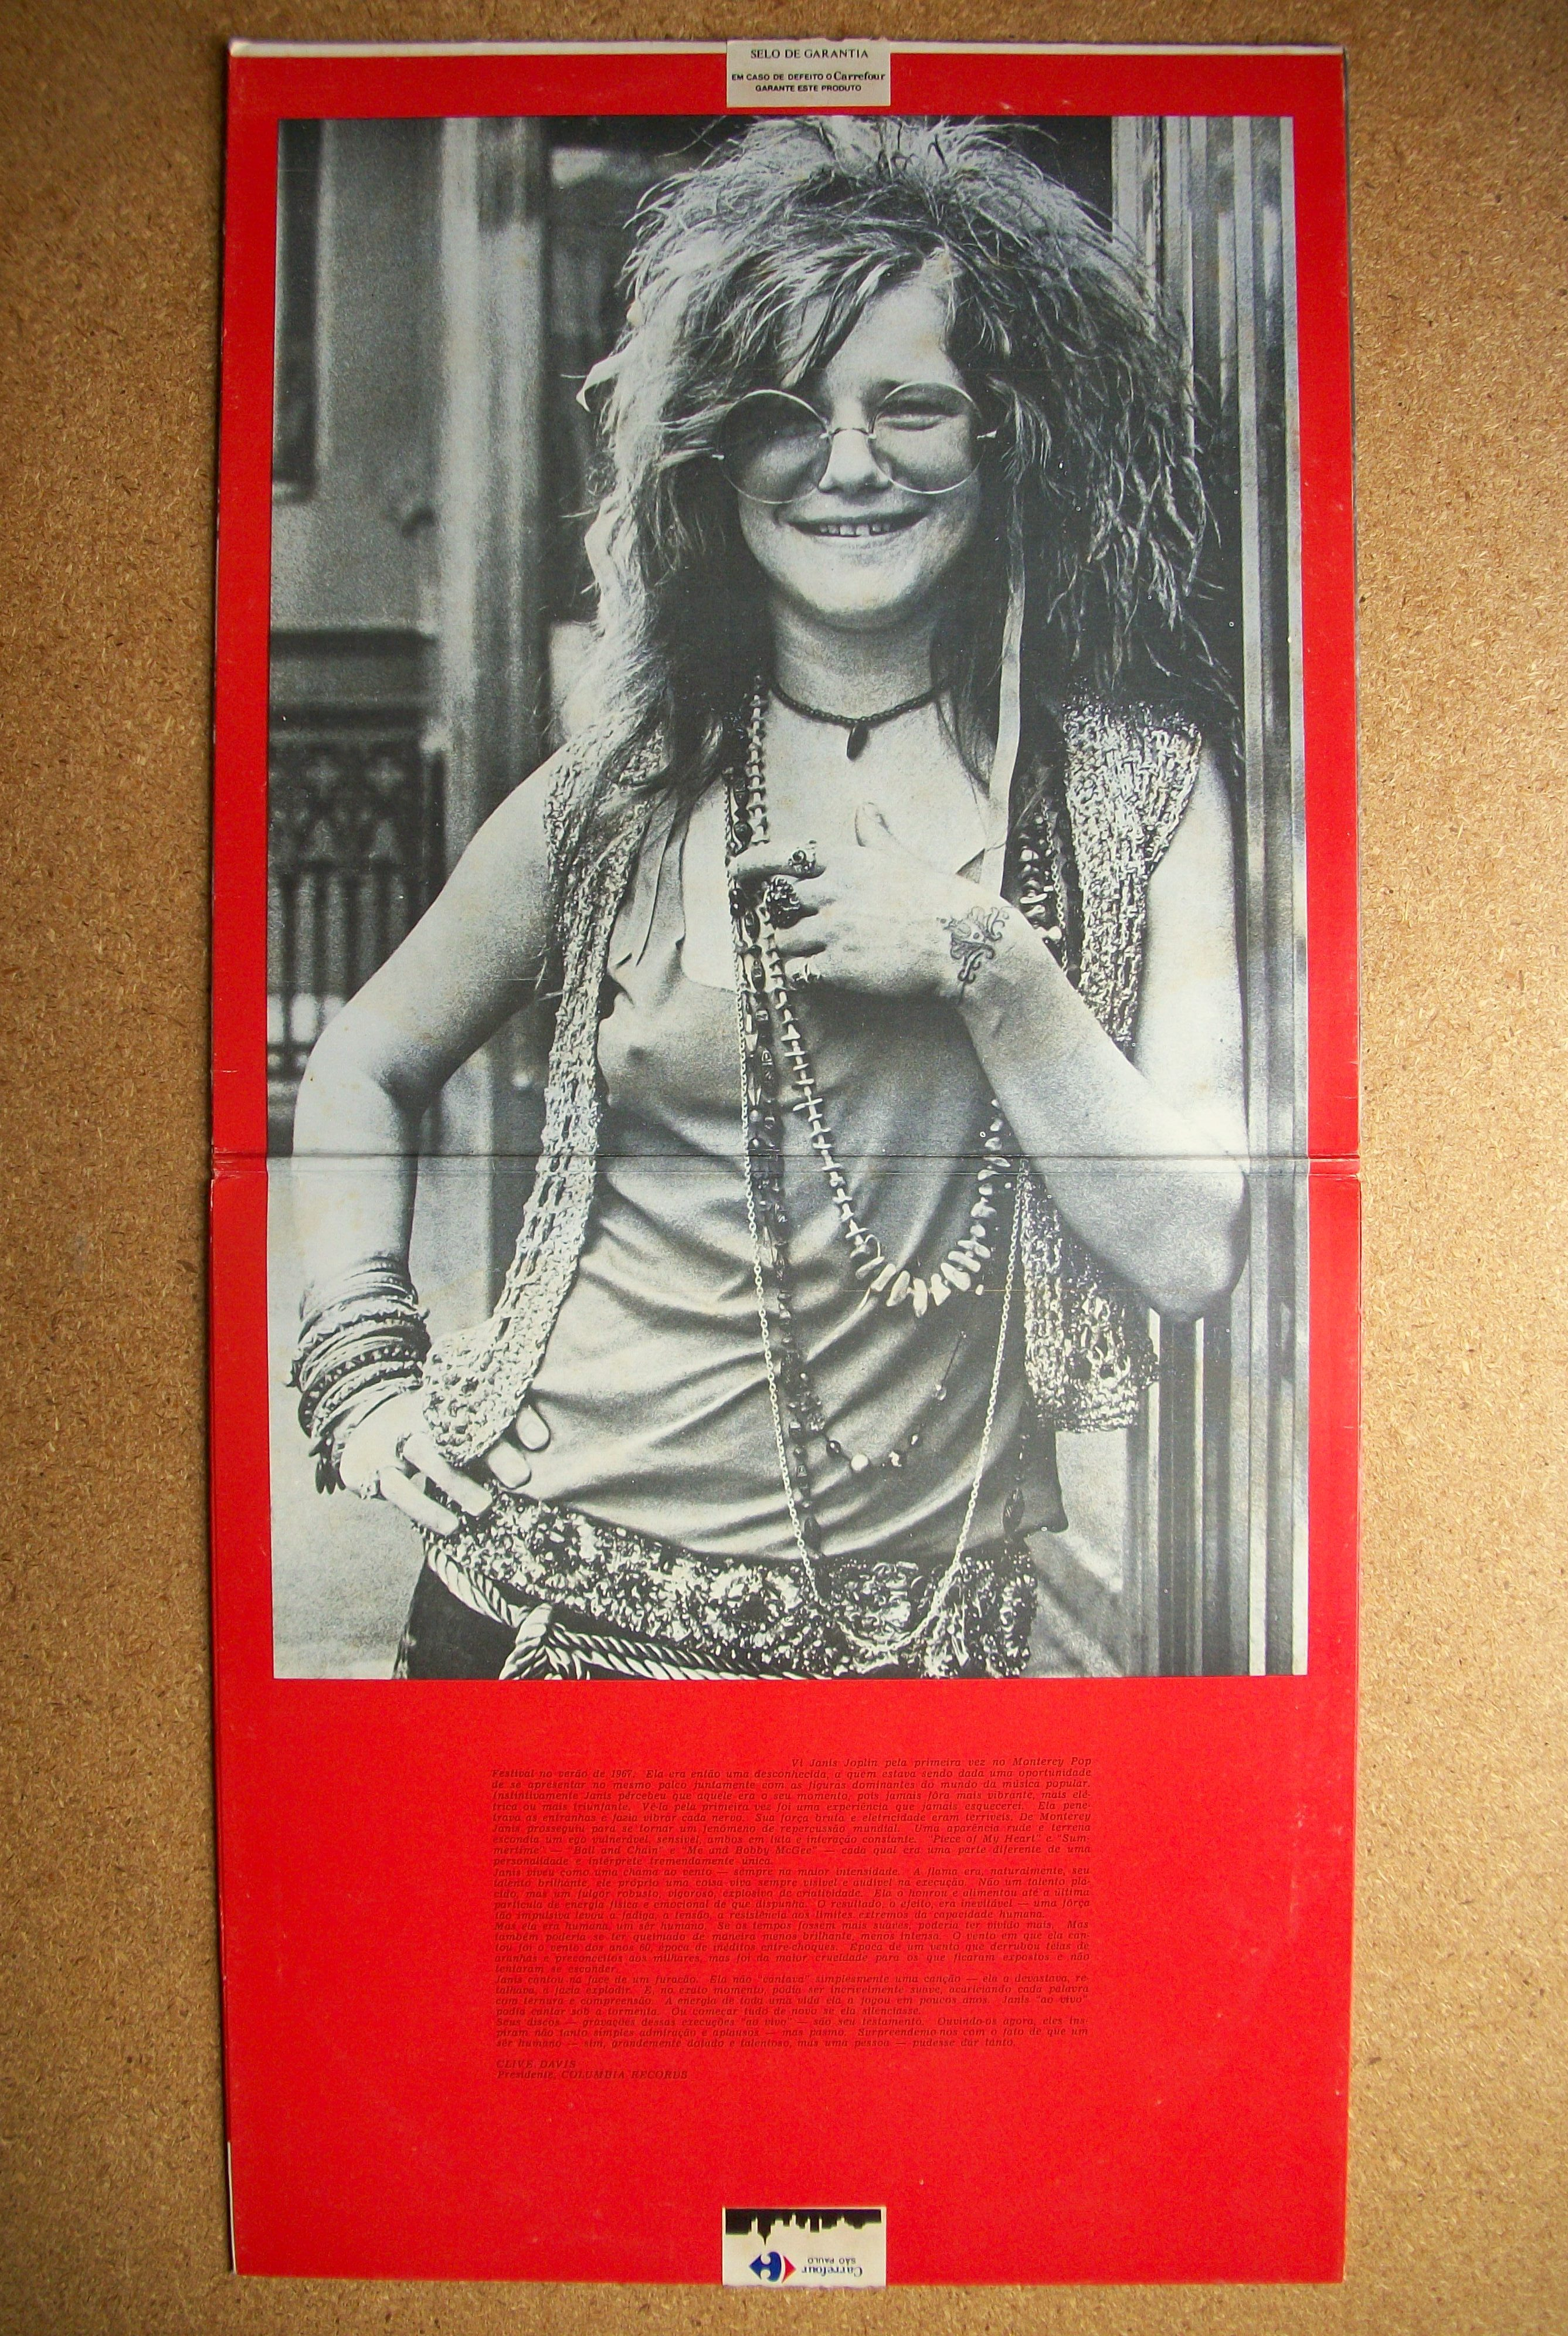 A new biography of janis joplin captures the pain and soul of an adventurous life